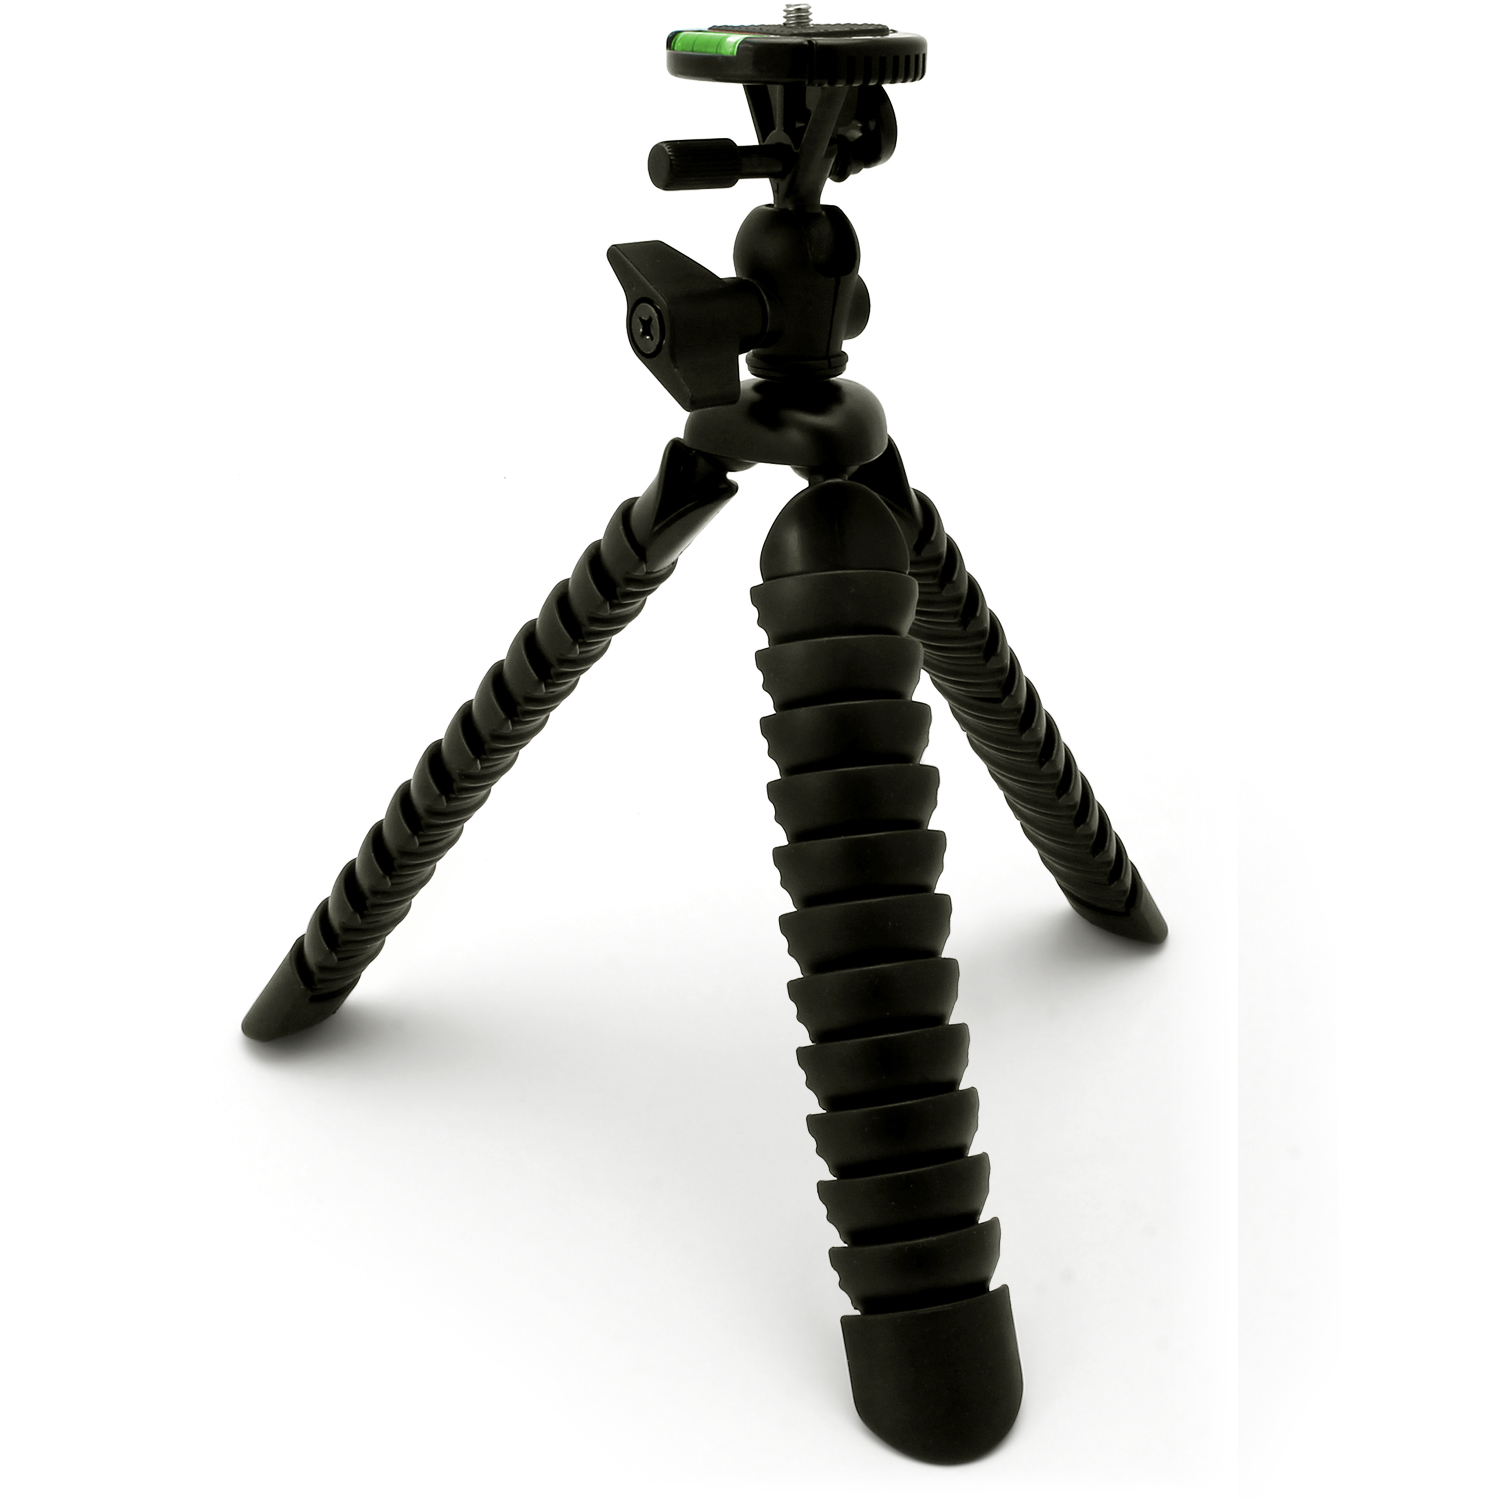 iGadgitz 11-Inch Large Flexible Tripod Stand for DSLR SLR Cameras with Bendable Legs, Quick Release Plate, Bubble Level